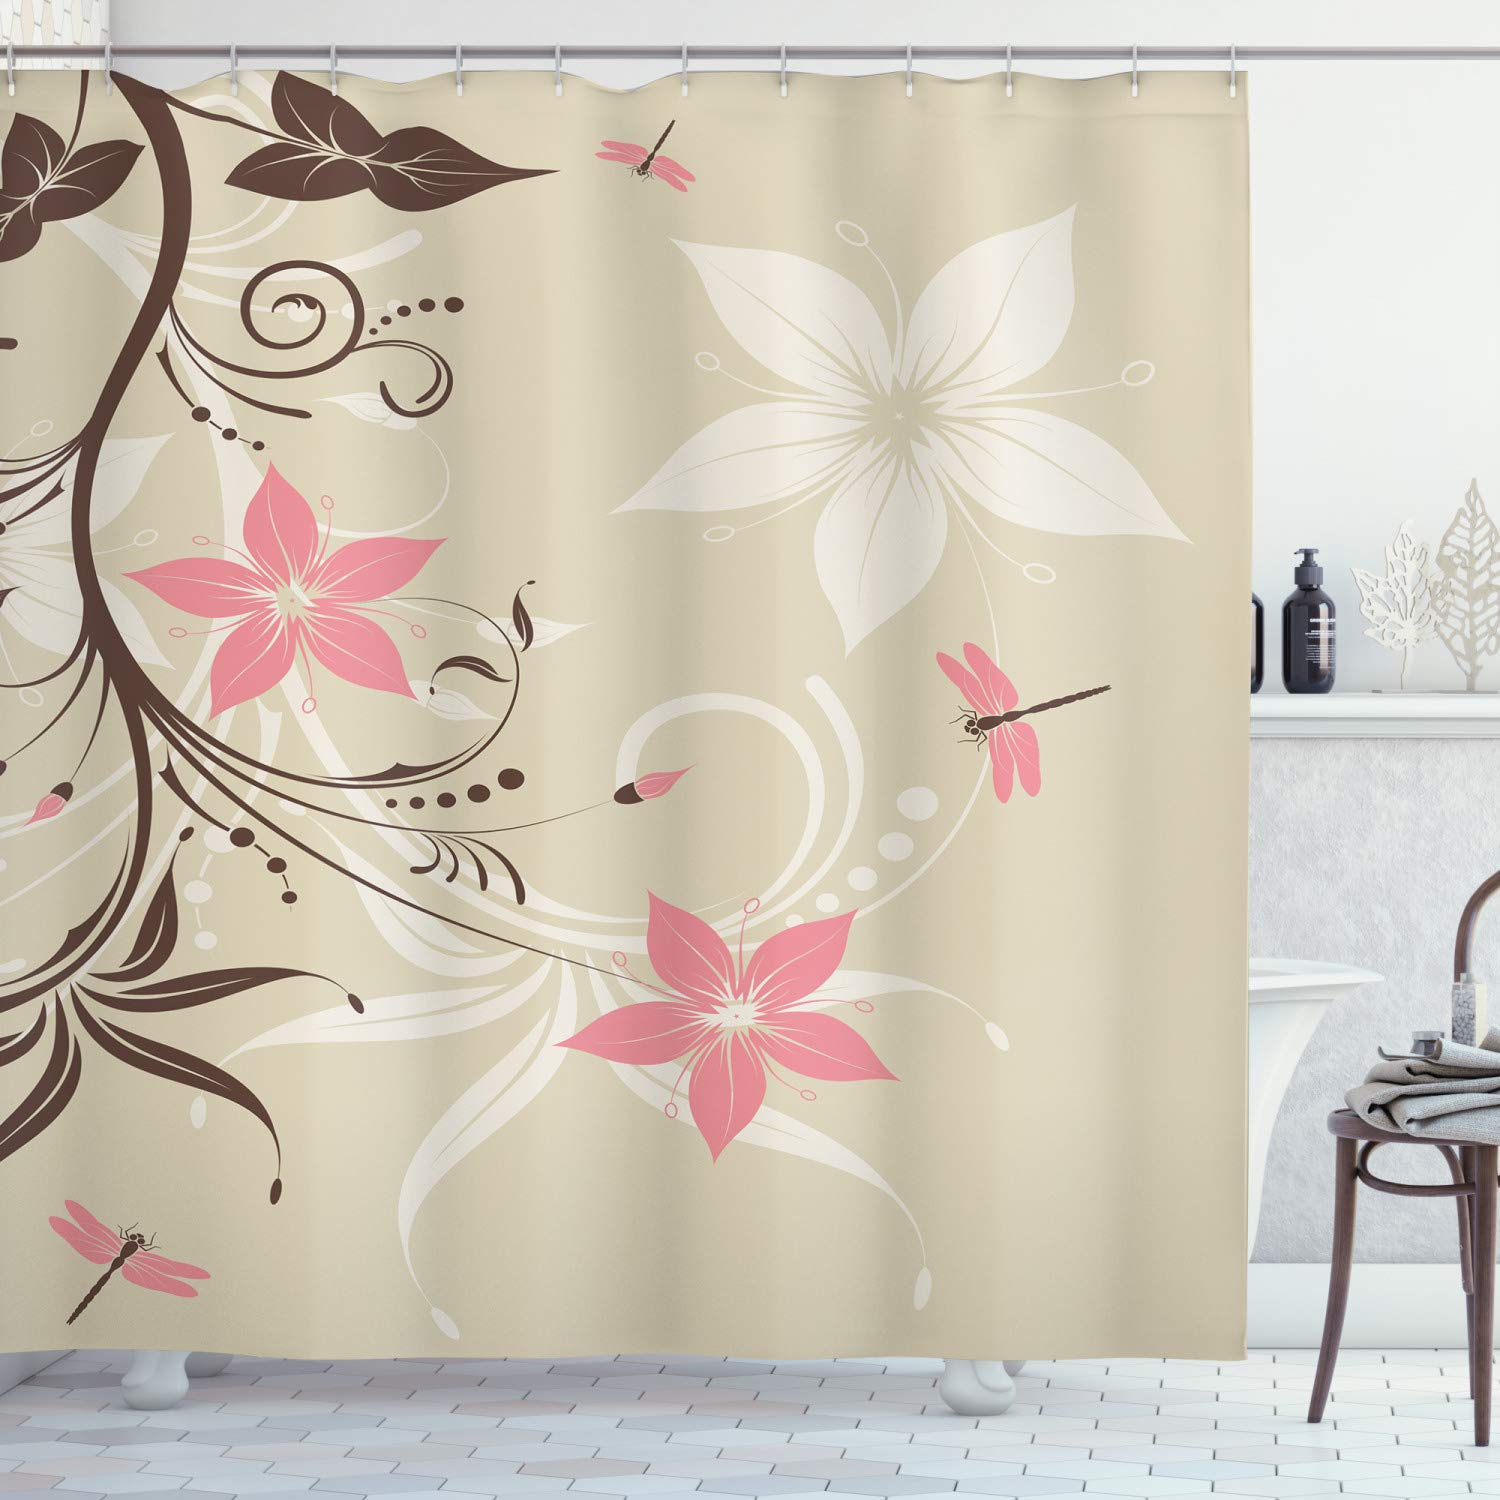 """Ambesonne Dragonfly Shower Curtain, Floral Background with Dragonflies and Spiral Fashioned Foliage Bud Elements Print, Cloth Fabric Bathroom Decor Set with Hooks, 70"""" Long, Brown Tan"""